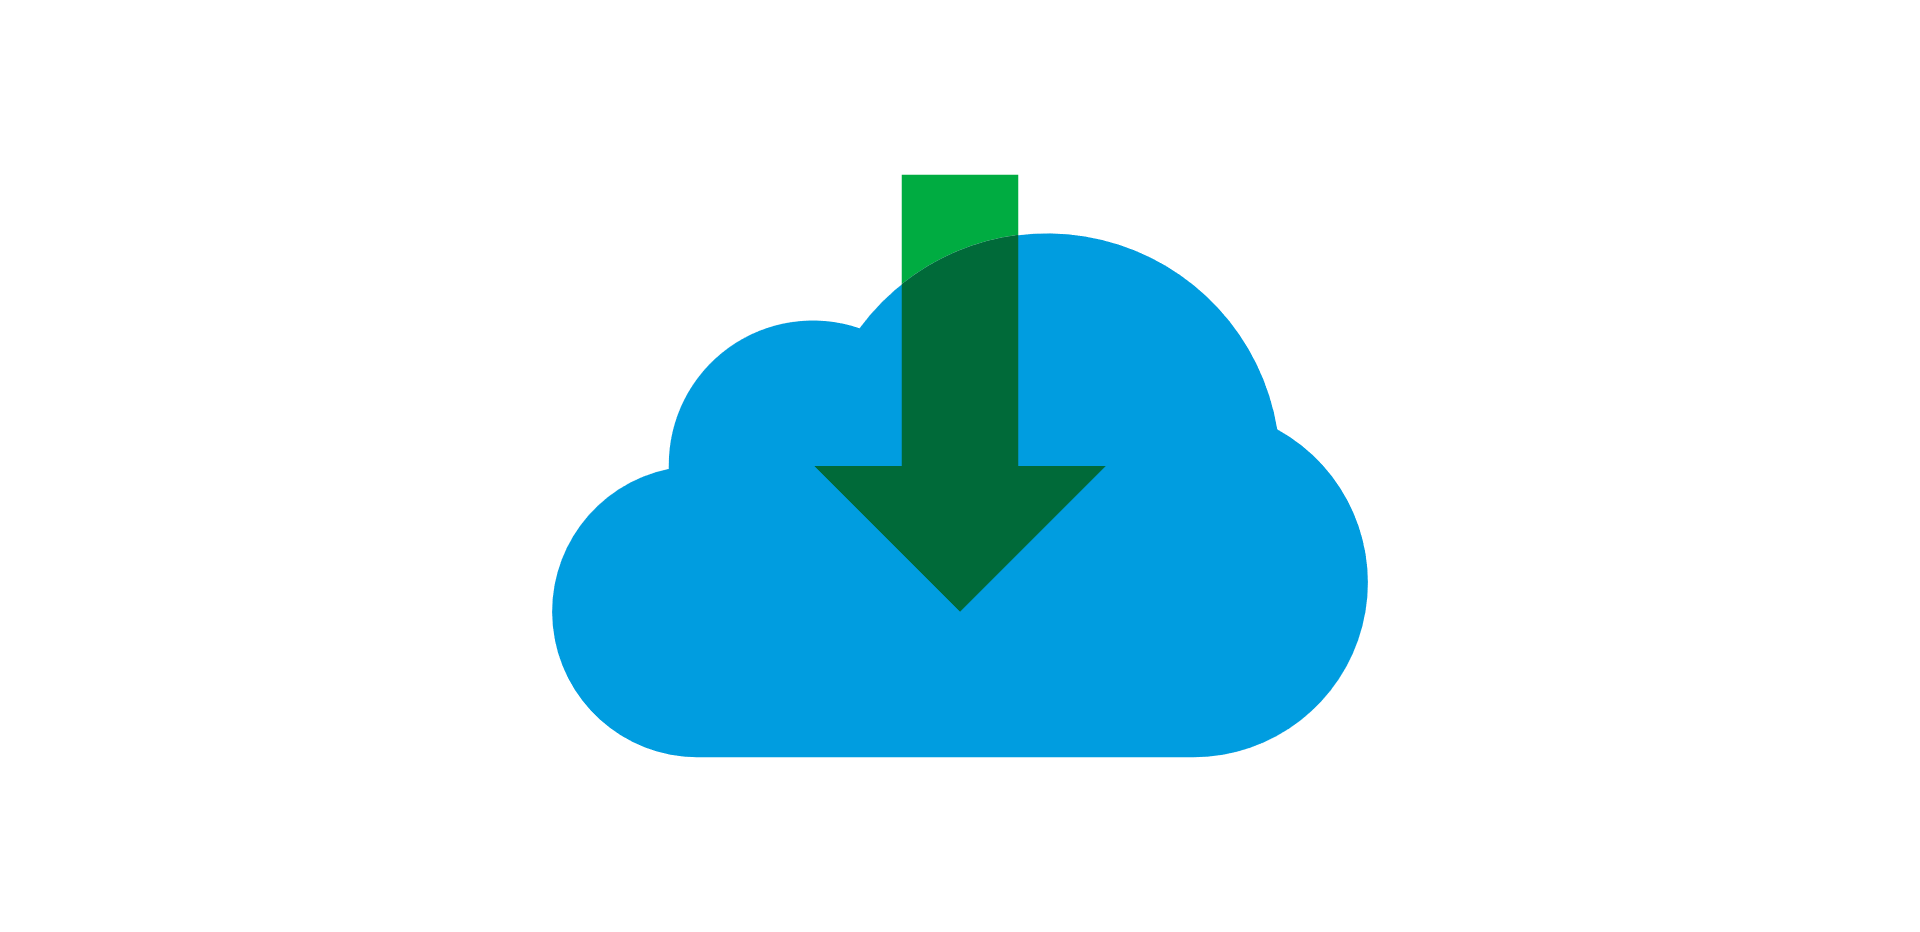 Blue cloud icon representing HR transformation